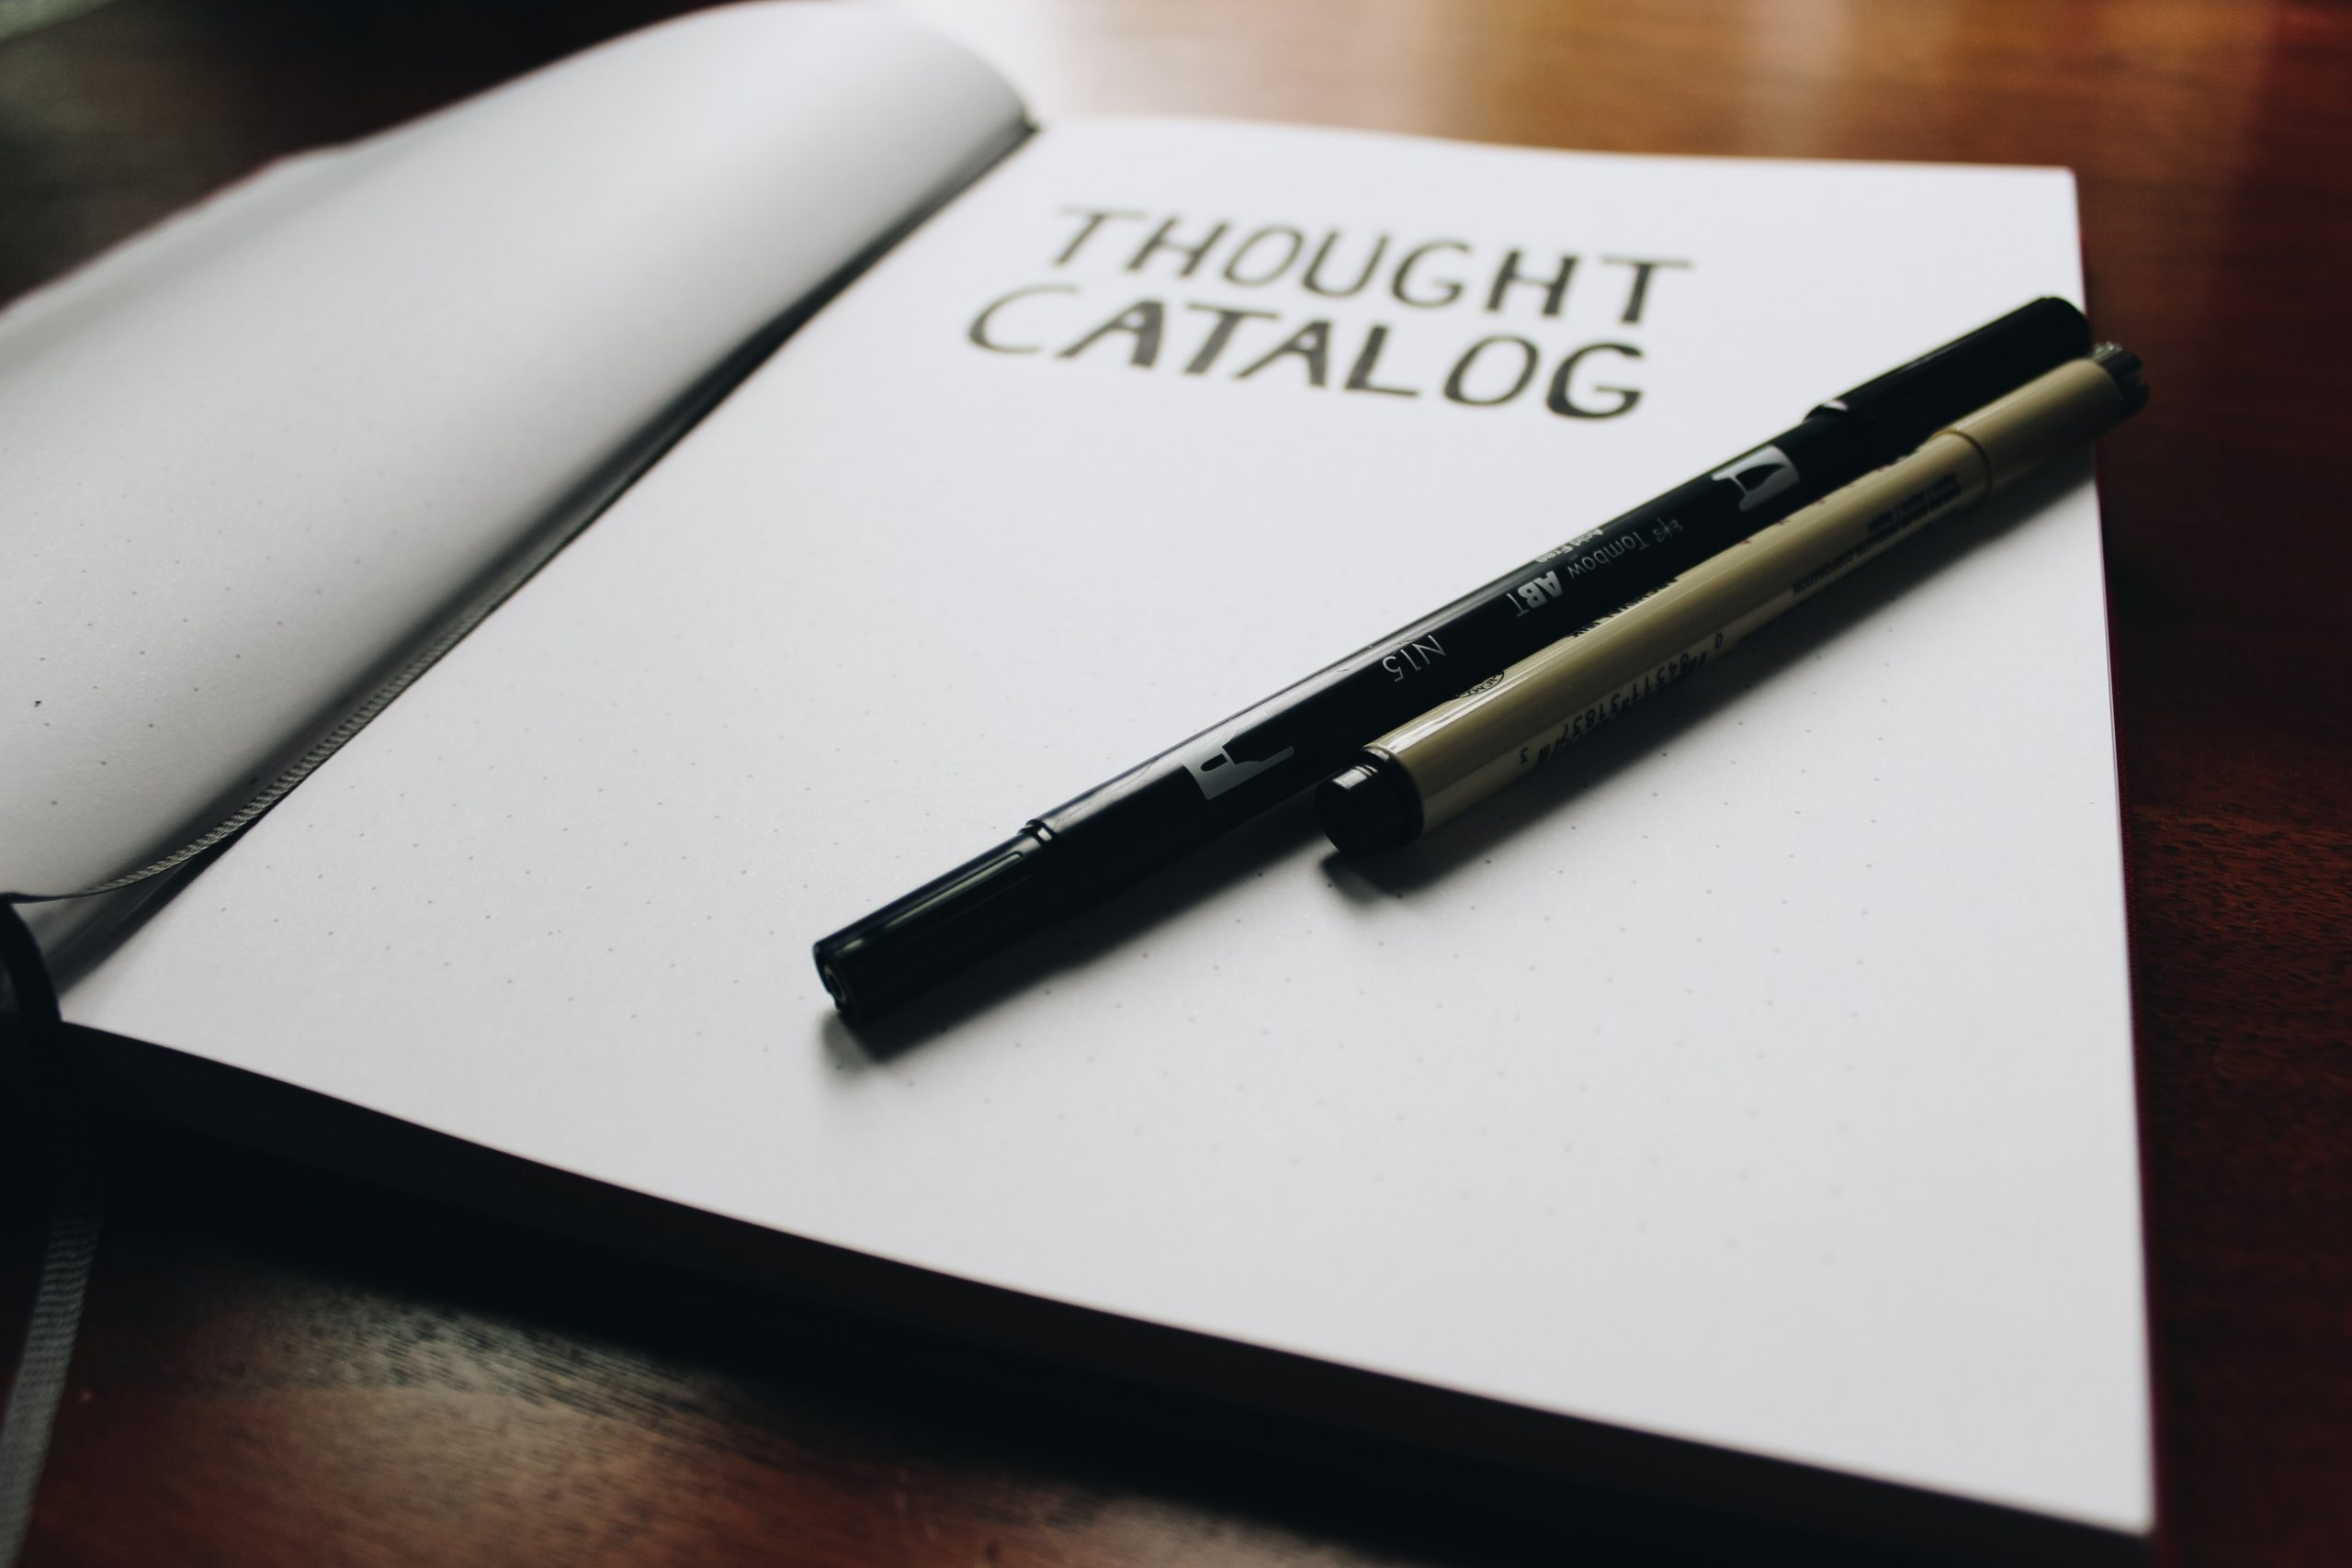 A notebook open on a table with the word 'though catalog' on. Two pens sit on top of the page.